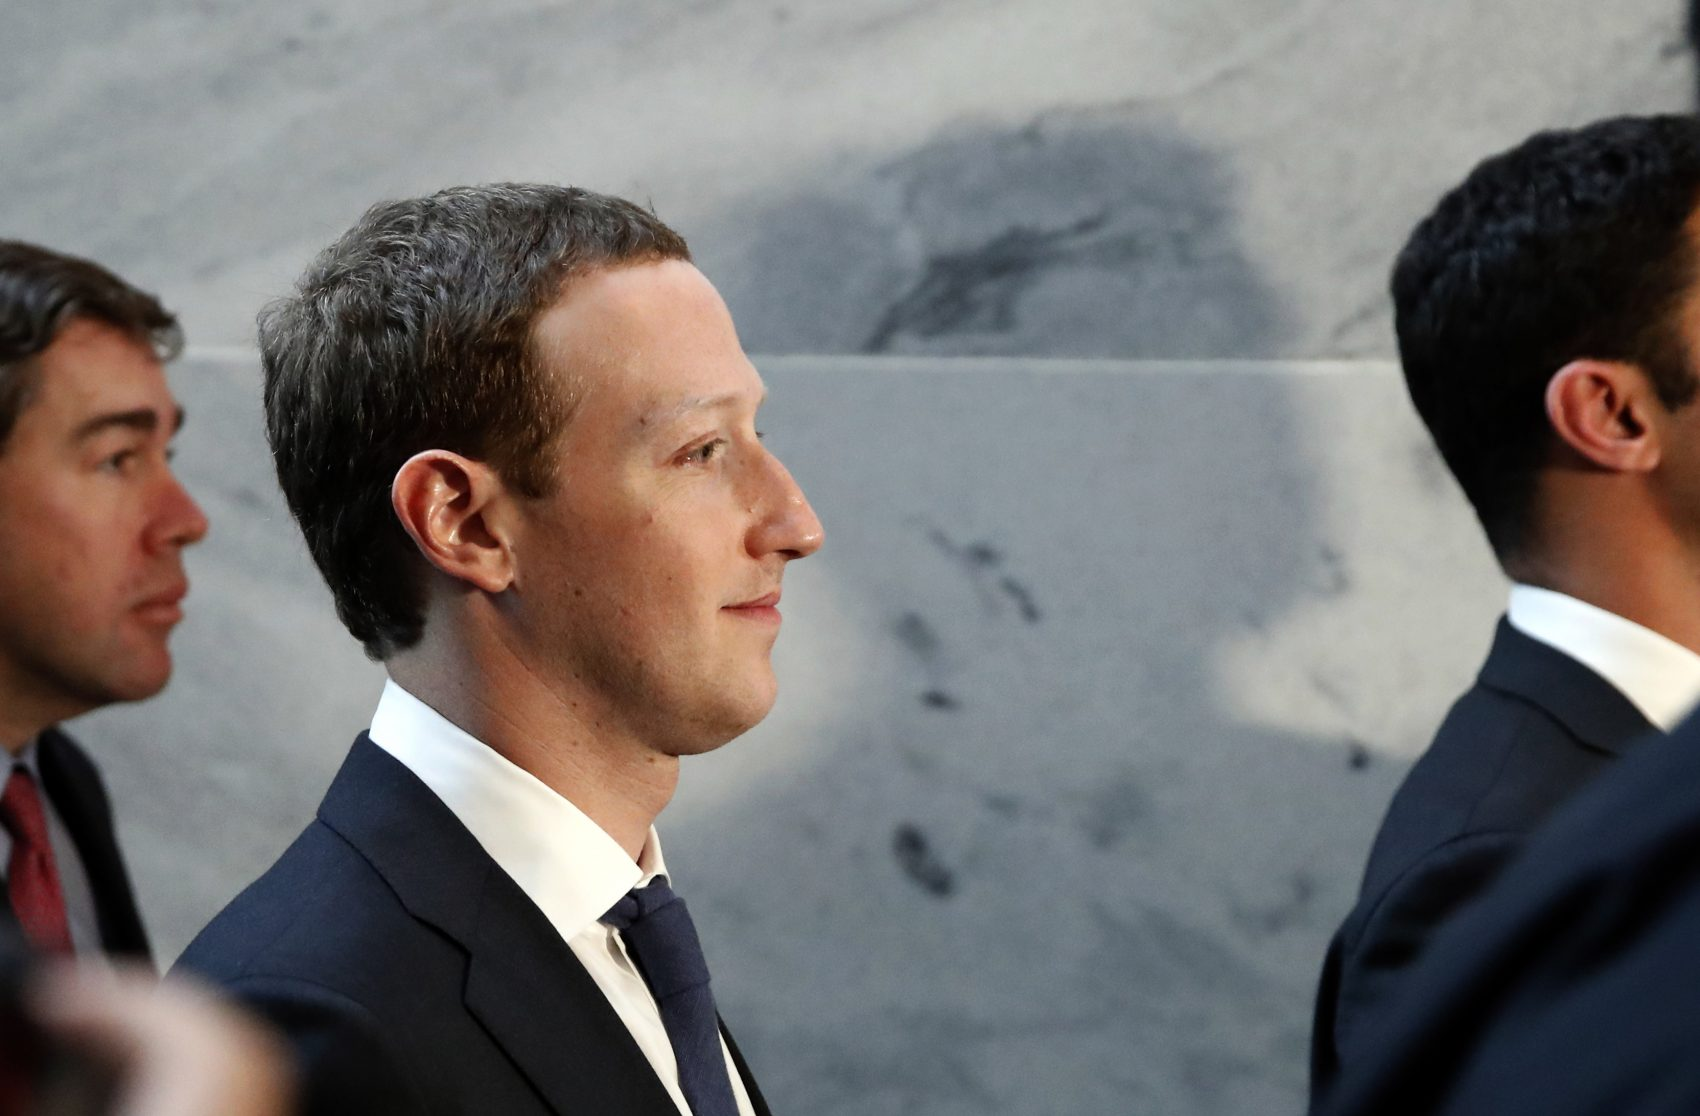 Facebook CEO Mark Zuckerberg departs after meetings with senators on Capitol Hill, Monday, April 9, 2018, in Washington. Zuckerberg will testify Tuesday before a joint hearing of the Commerce and Judiciary Committees about the use of Facebook data to target American voters in the 2016 election. (Alex Brandon/AP)